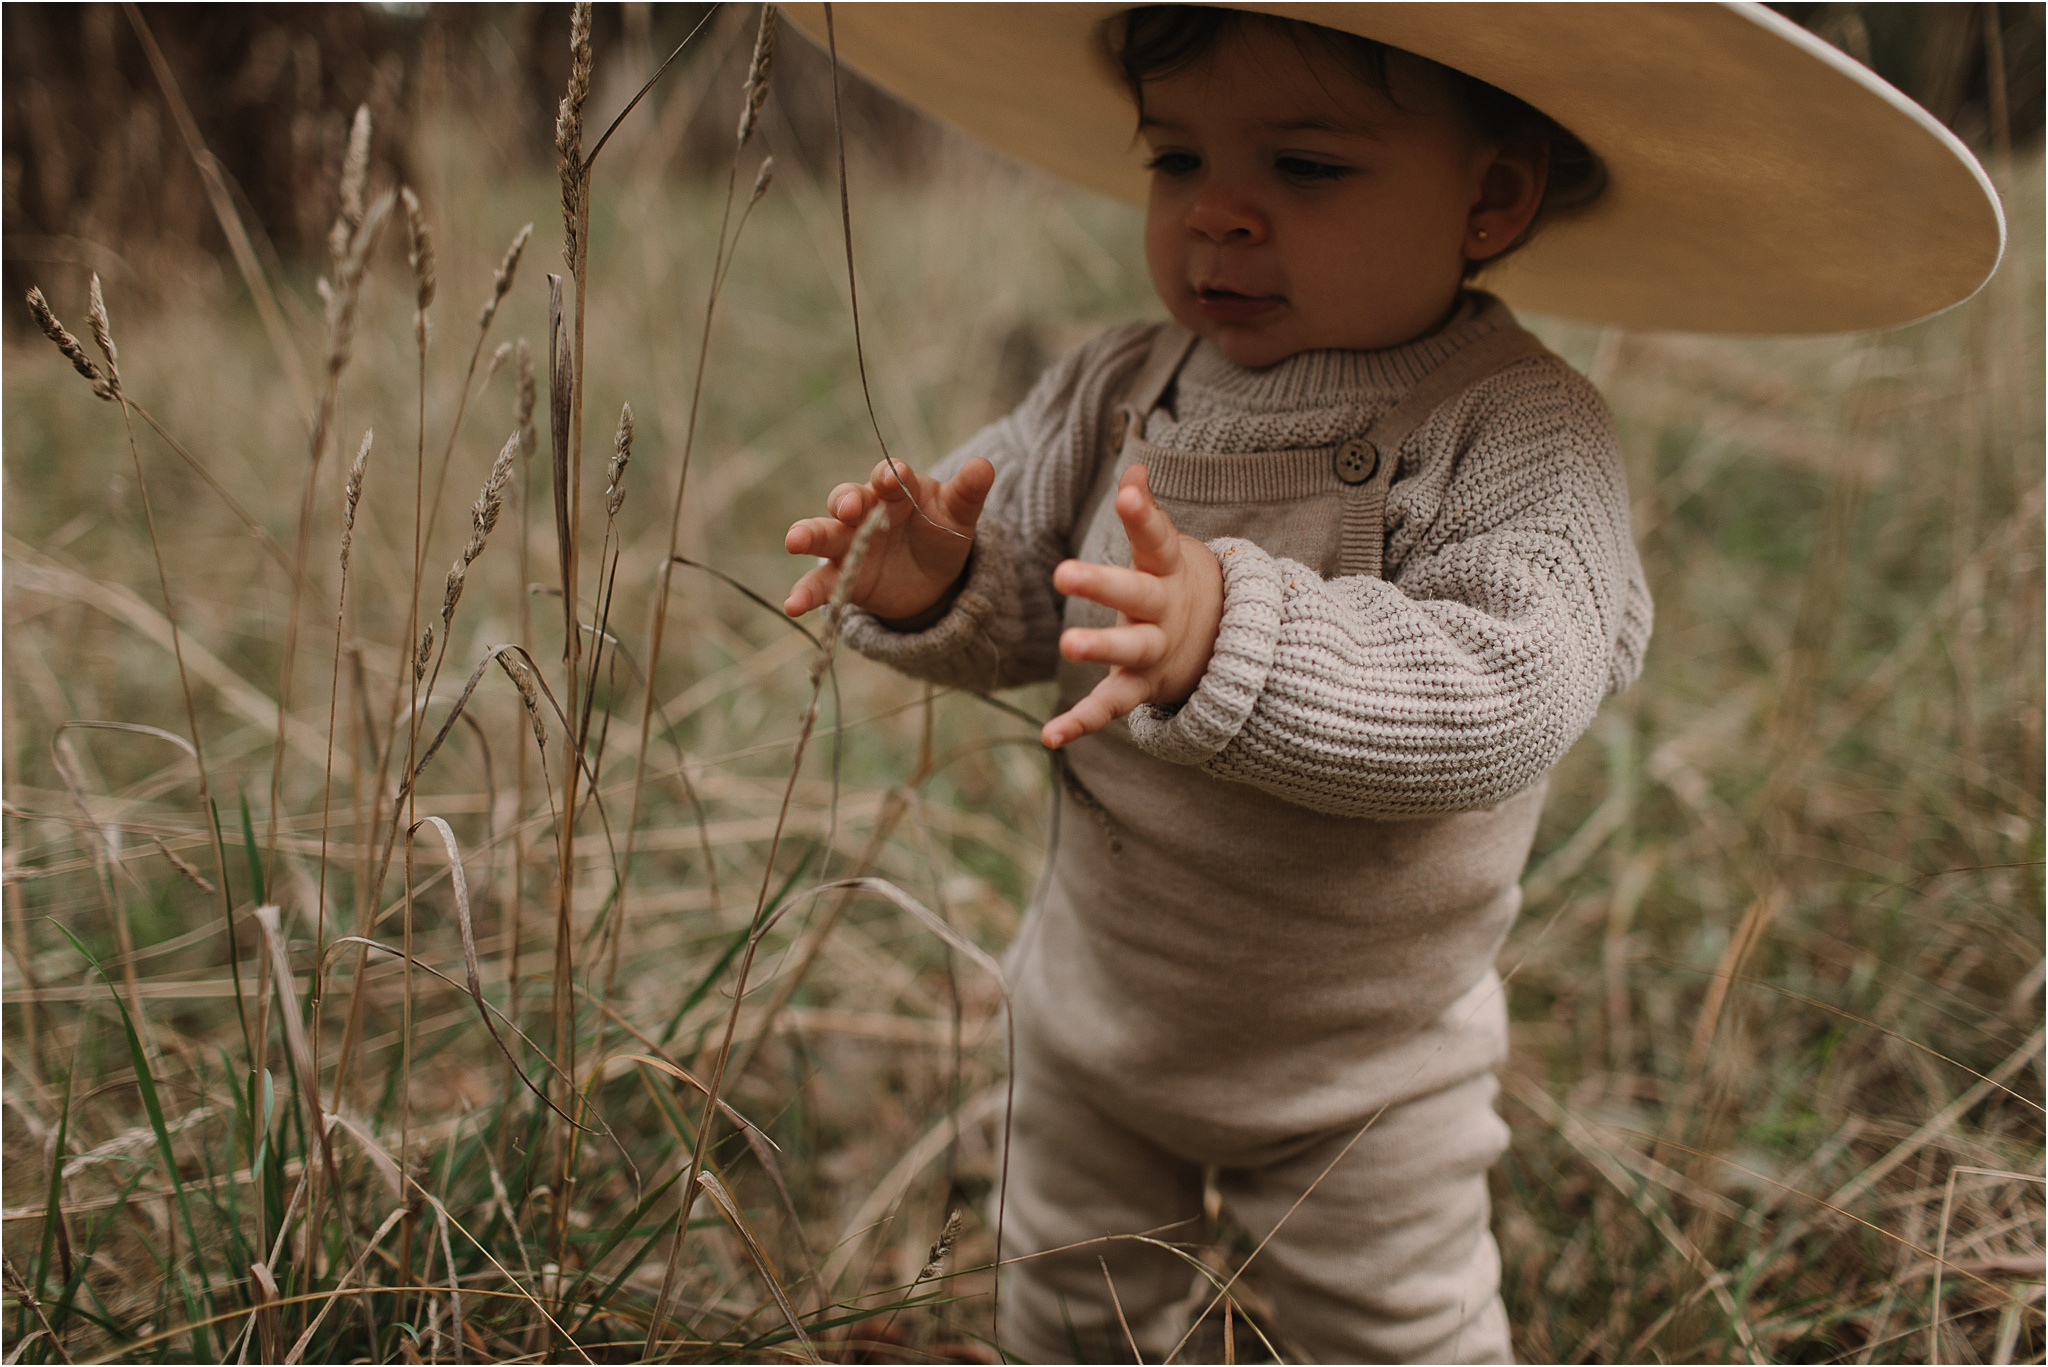 A toddler in a wide brim hat playing with long grass